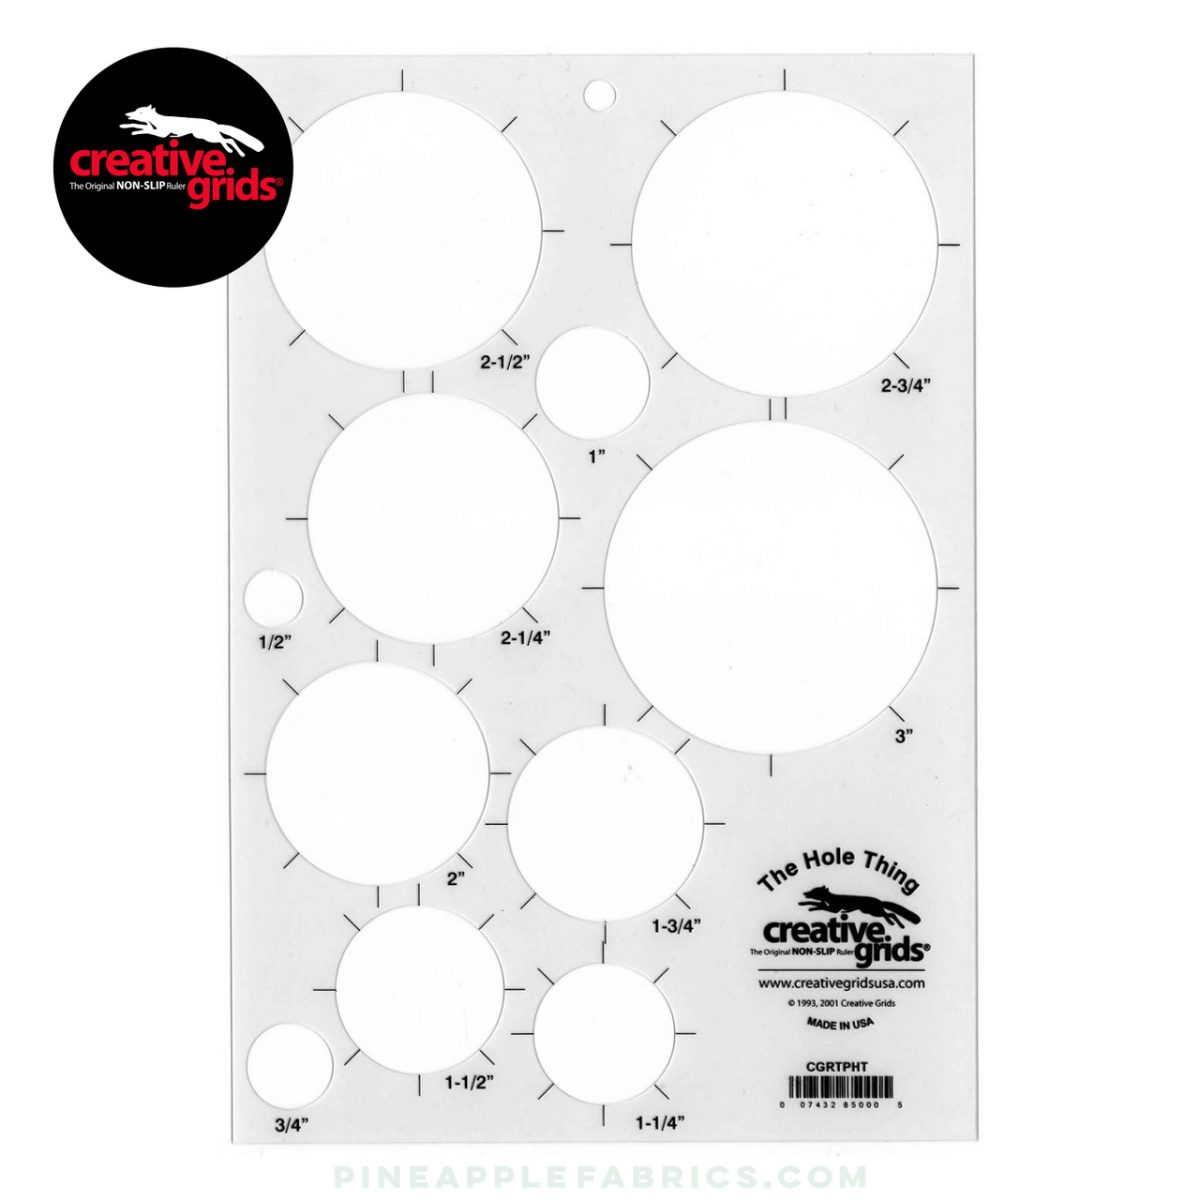 CGRTPHT -  Creative Grids The Hole Thing Template Plastic